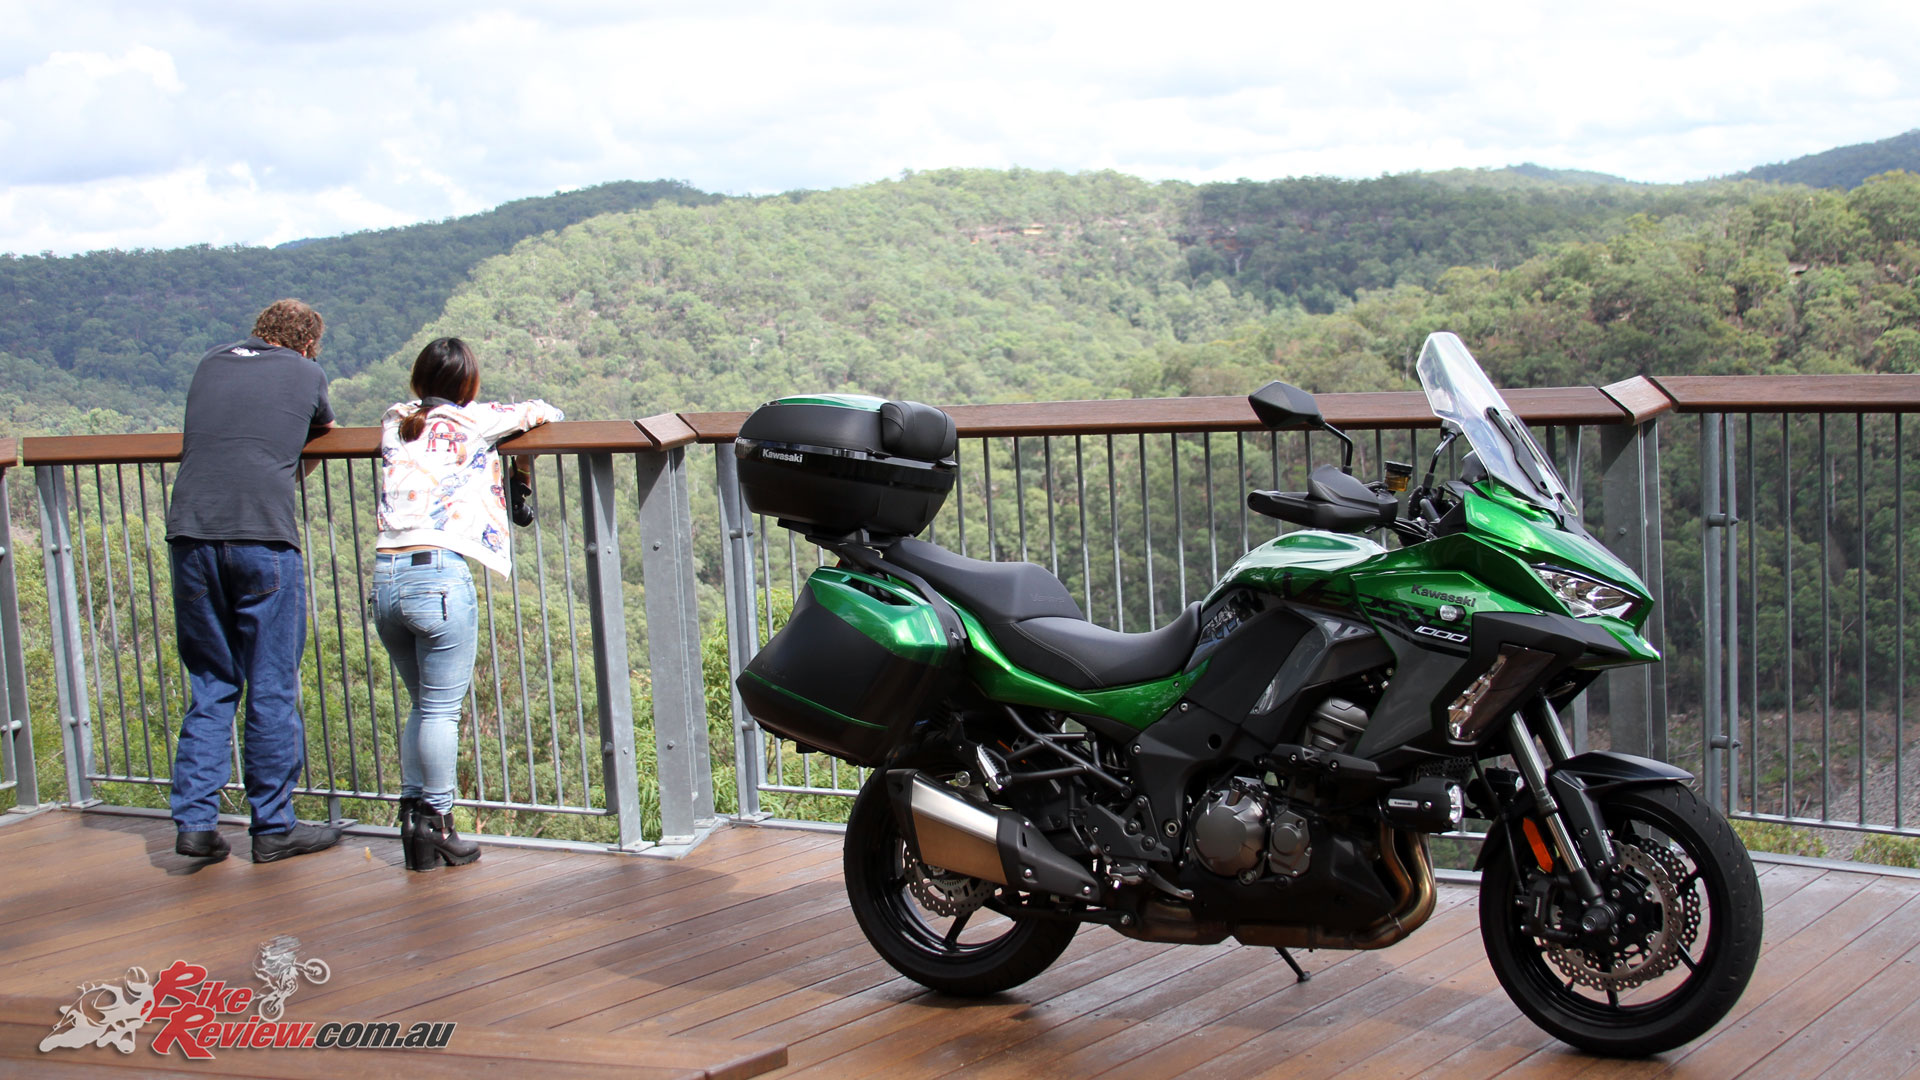 The Versys 1000 SE makes an ideal two-up sports-tourer with significant character changes at the flick of a button